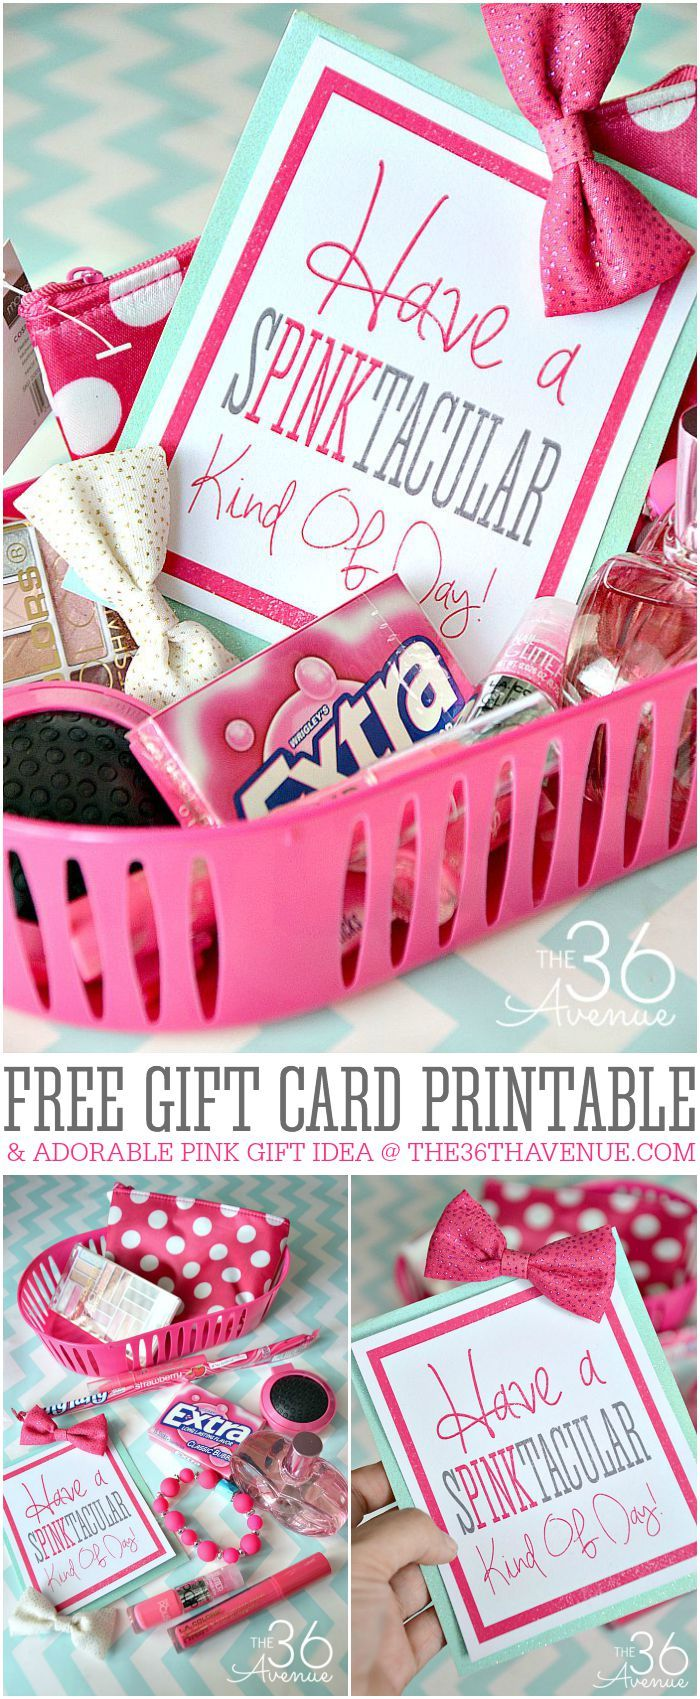 DIY Handmade PINK Gift Idea And Free Printable At The36thavenue